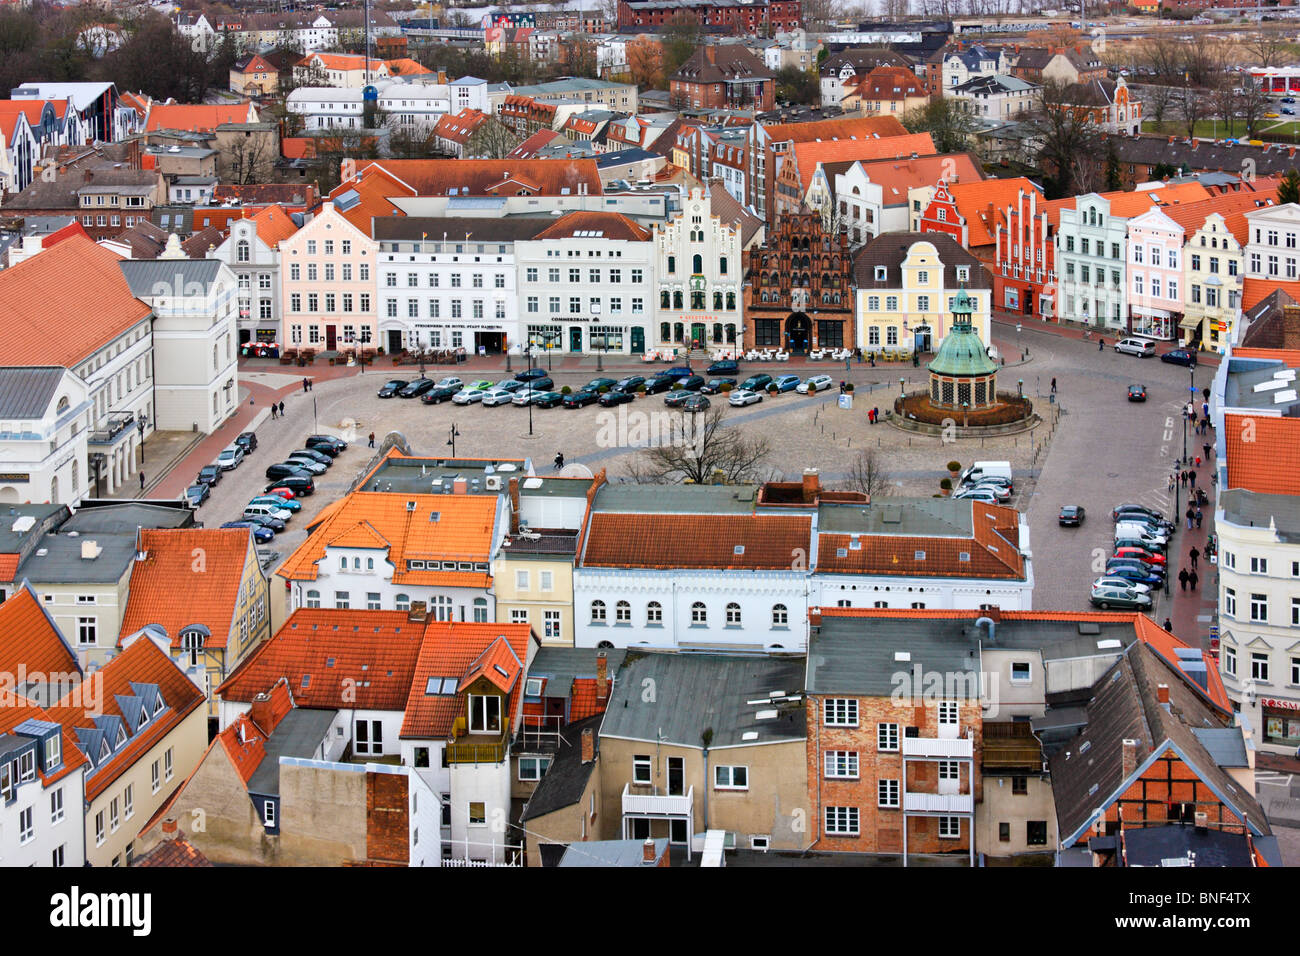 Aerial View over the market square, Wismar, Germany - Stock Image